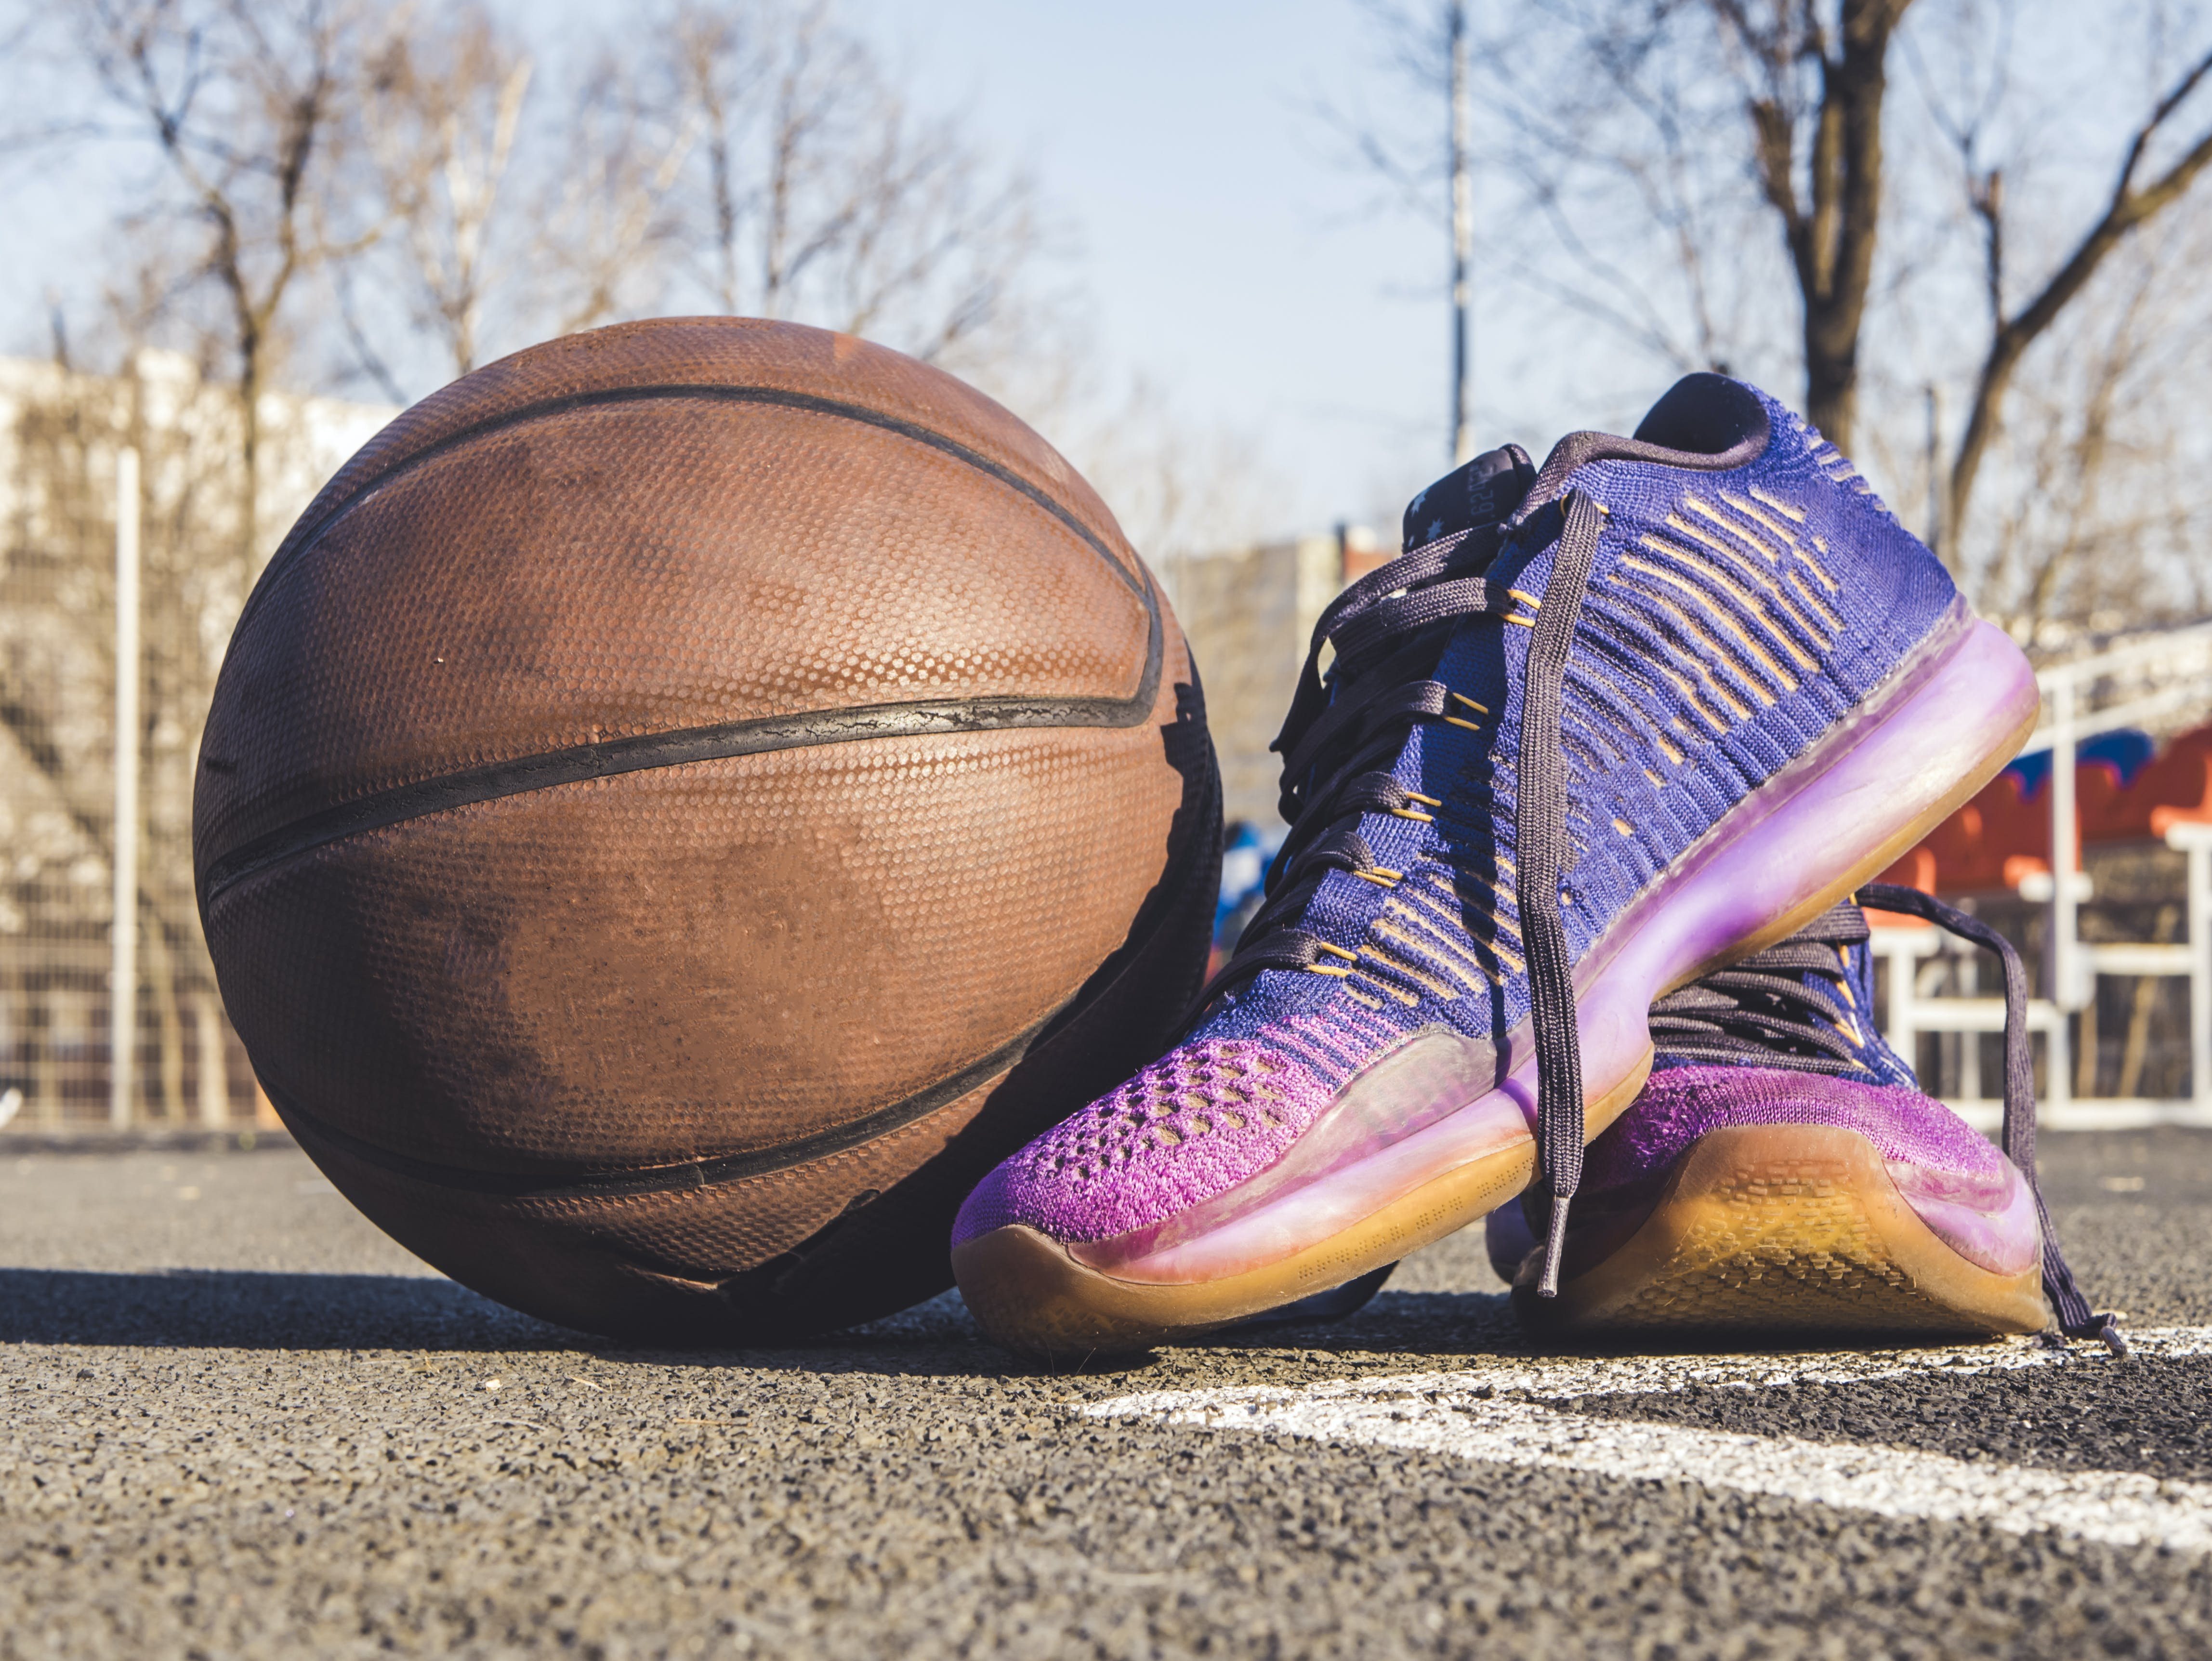 Close-Up Photography of Shoes Near Ball